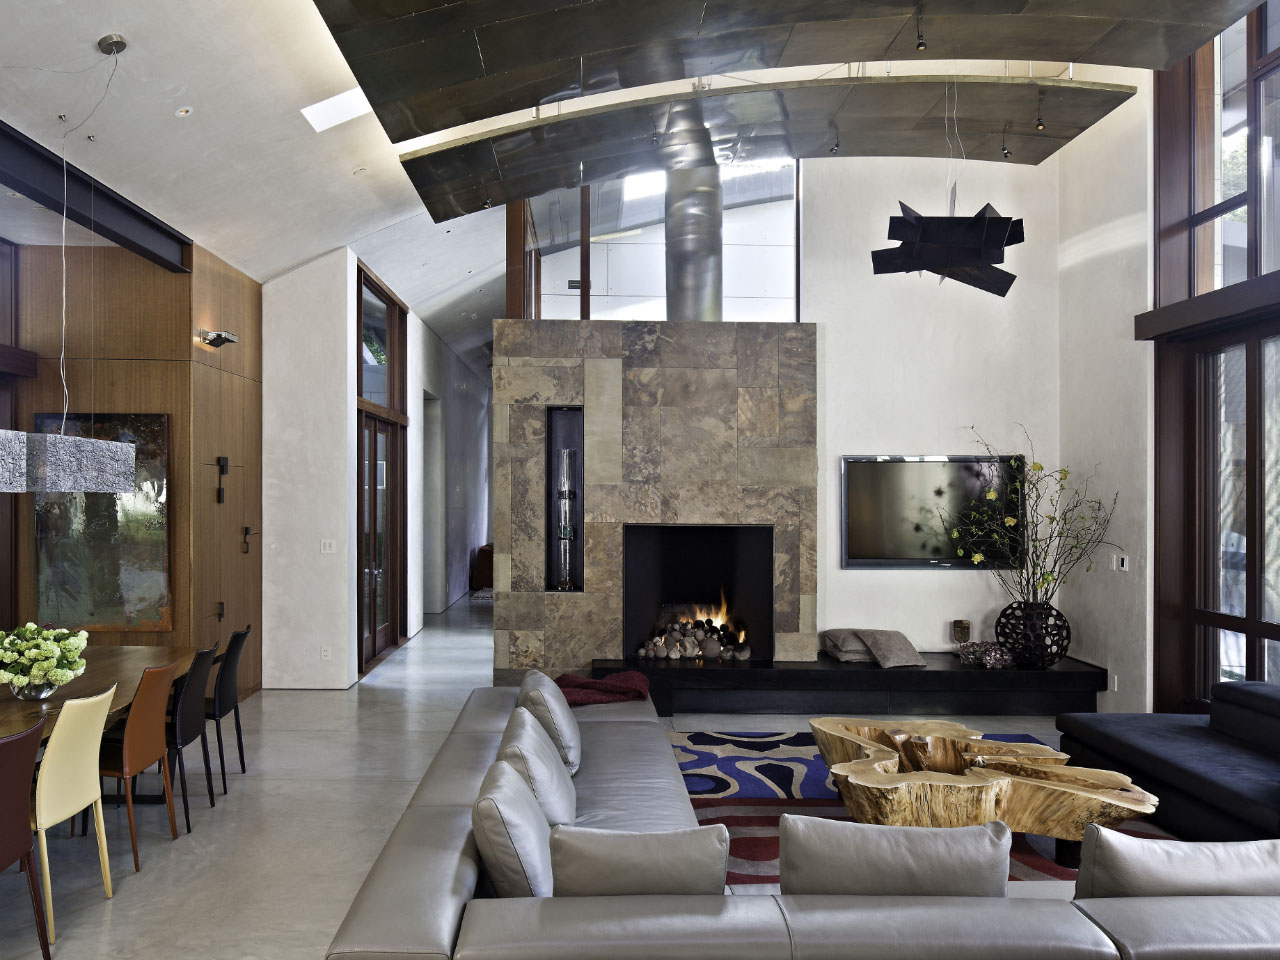 Saratoga Creek House By WA Design | Credit: WA Design